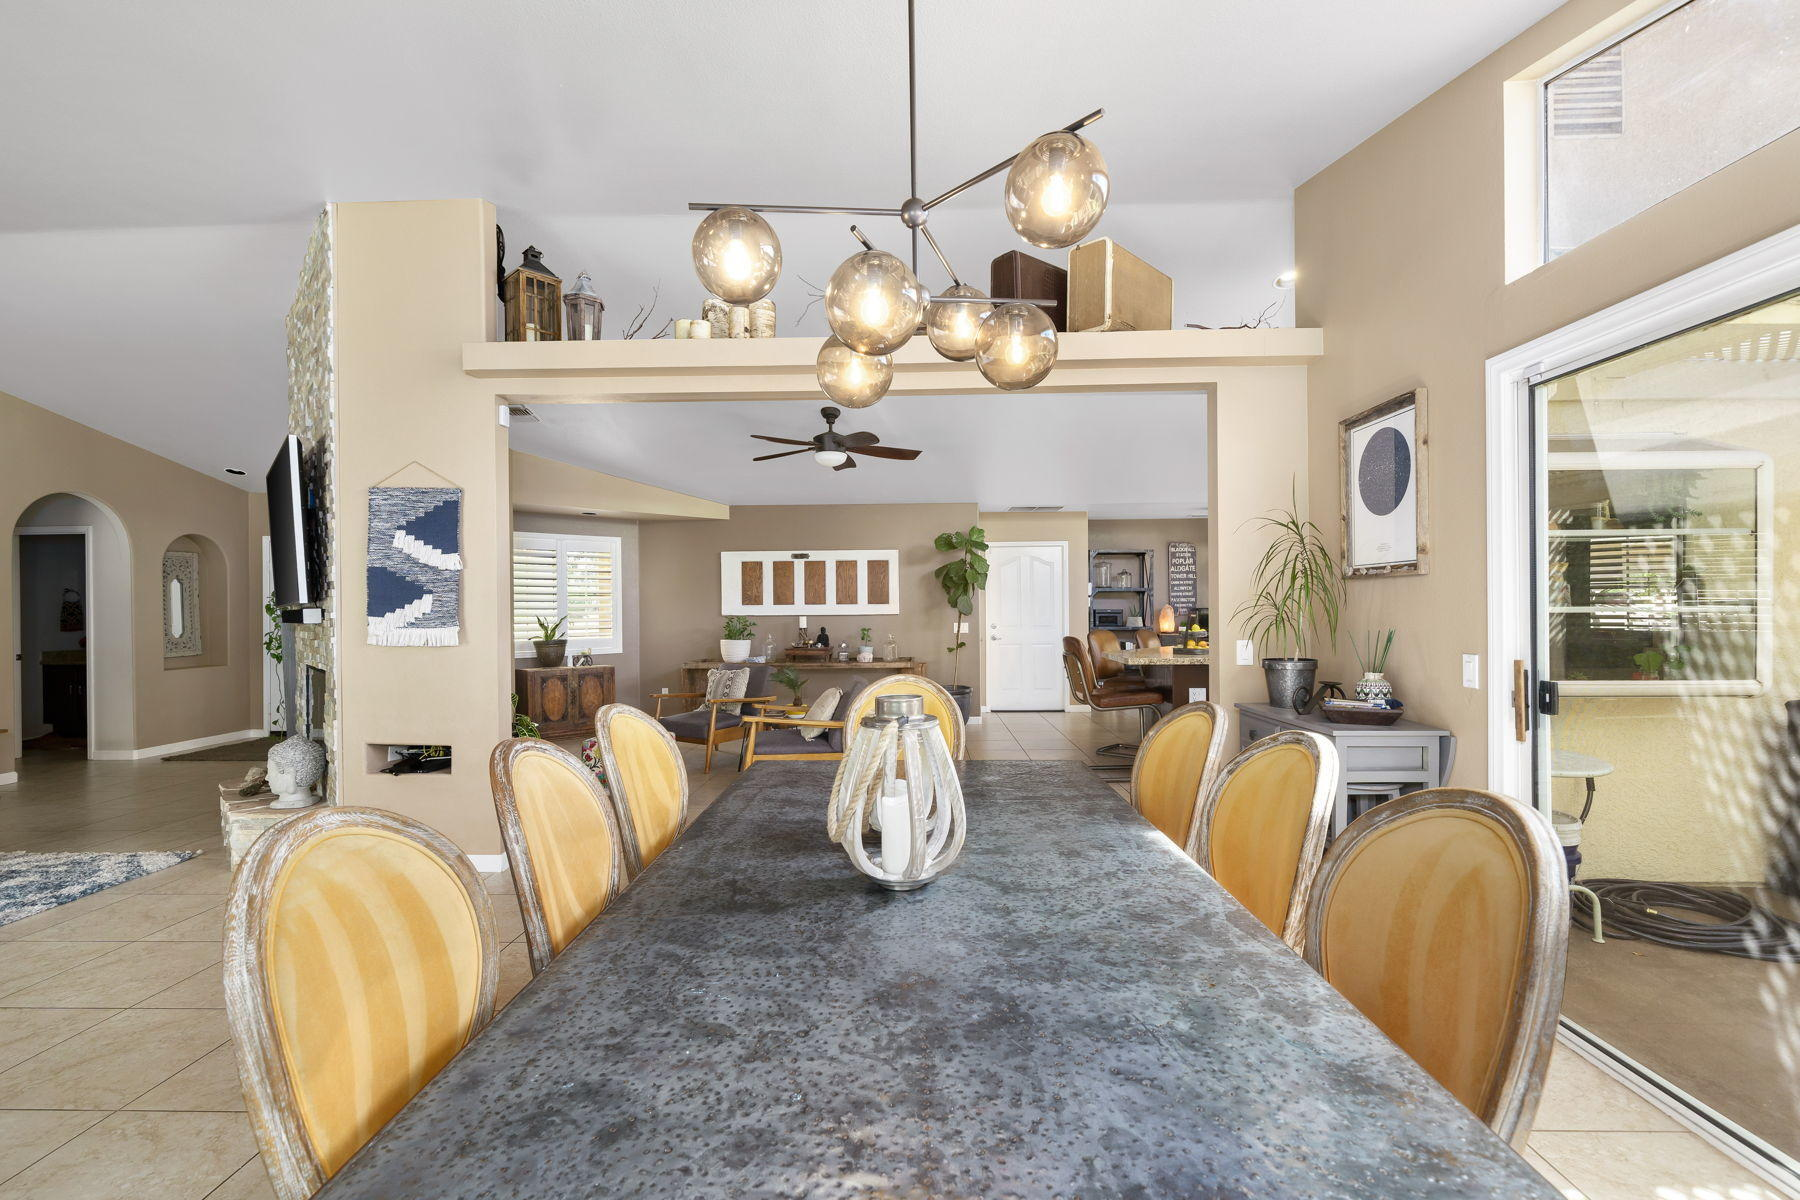 38993 Palace Drive, Palm Desert, California 92211, 4 Bedrooms Bedrooms, ,4 BathroomsBathrooms,Residential,For Sale,38993 Palace Drive,219045477